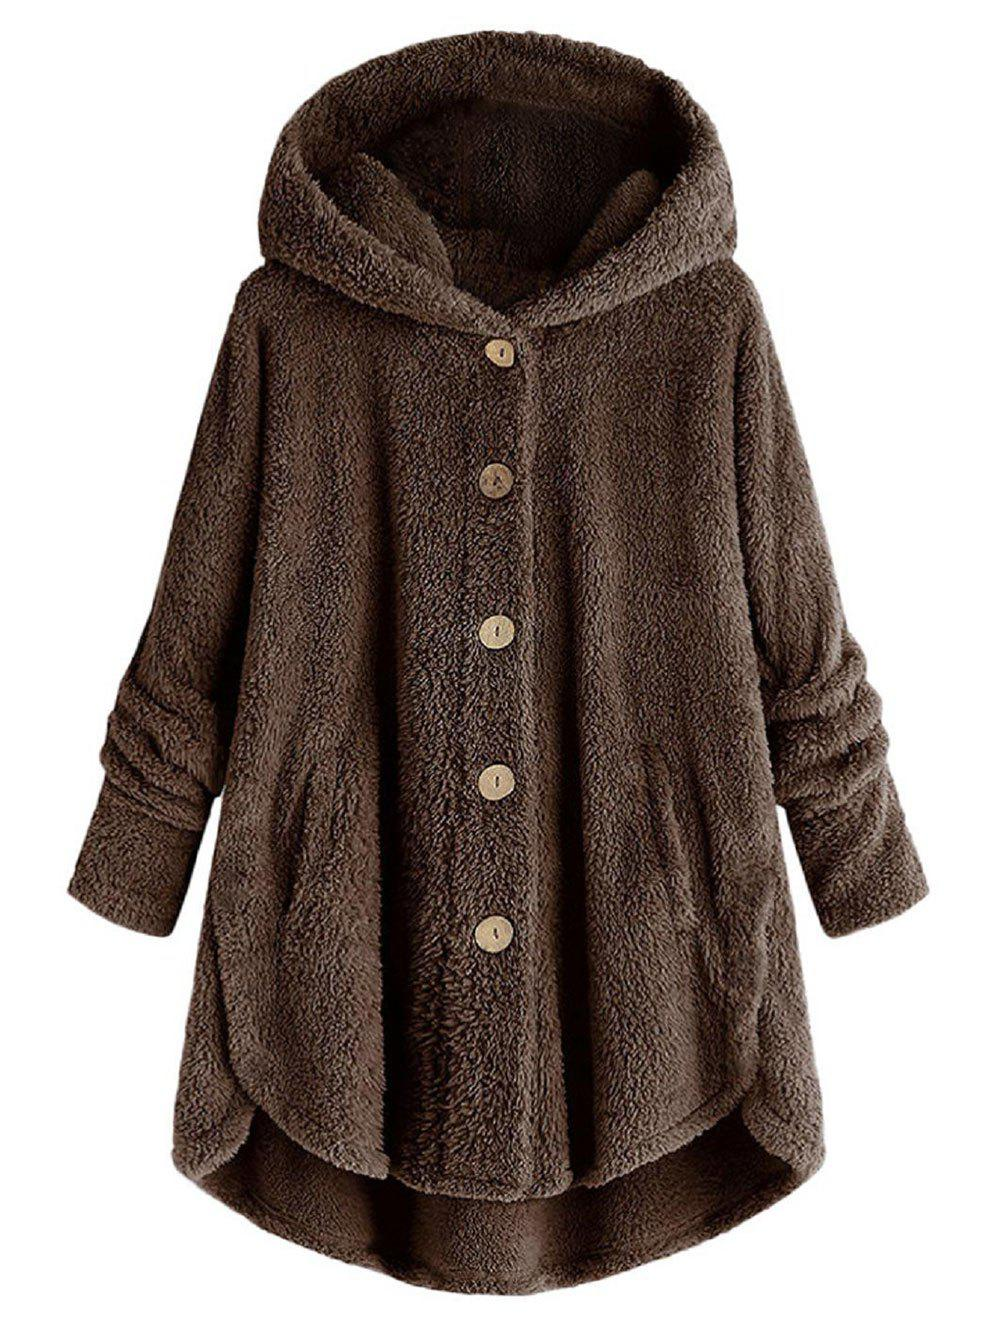 Hooded Fluffy Plus Size High Low Teddy Coat - BROWN 3X